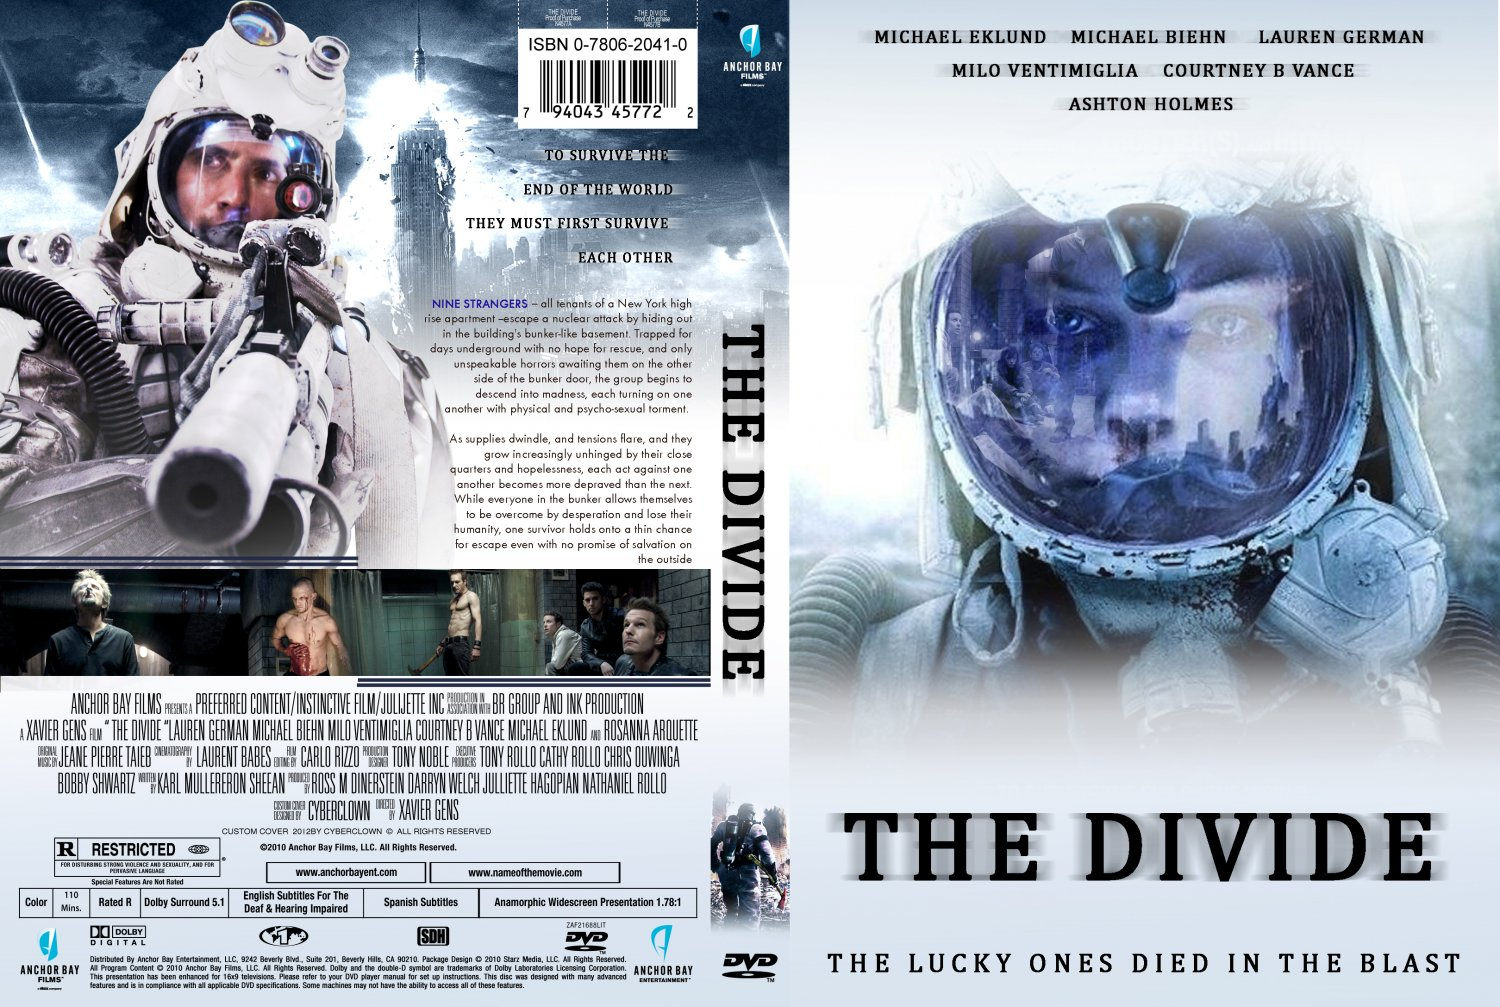 the divide An examination of economic inequality in the us and uk focusing on seven everyday people and how it creates a division while also showing what they have in common.